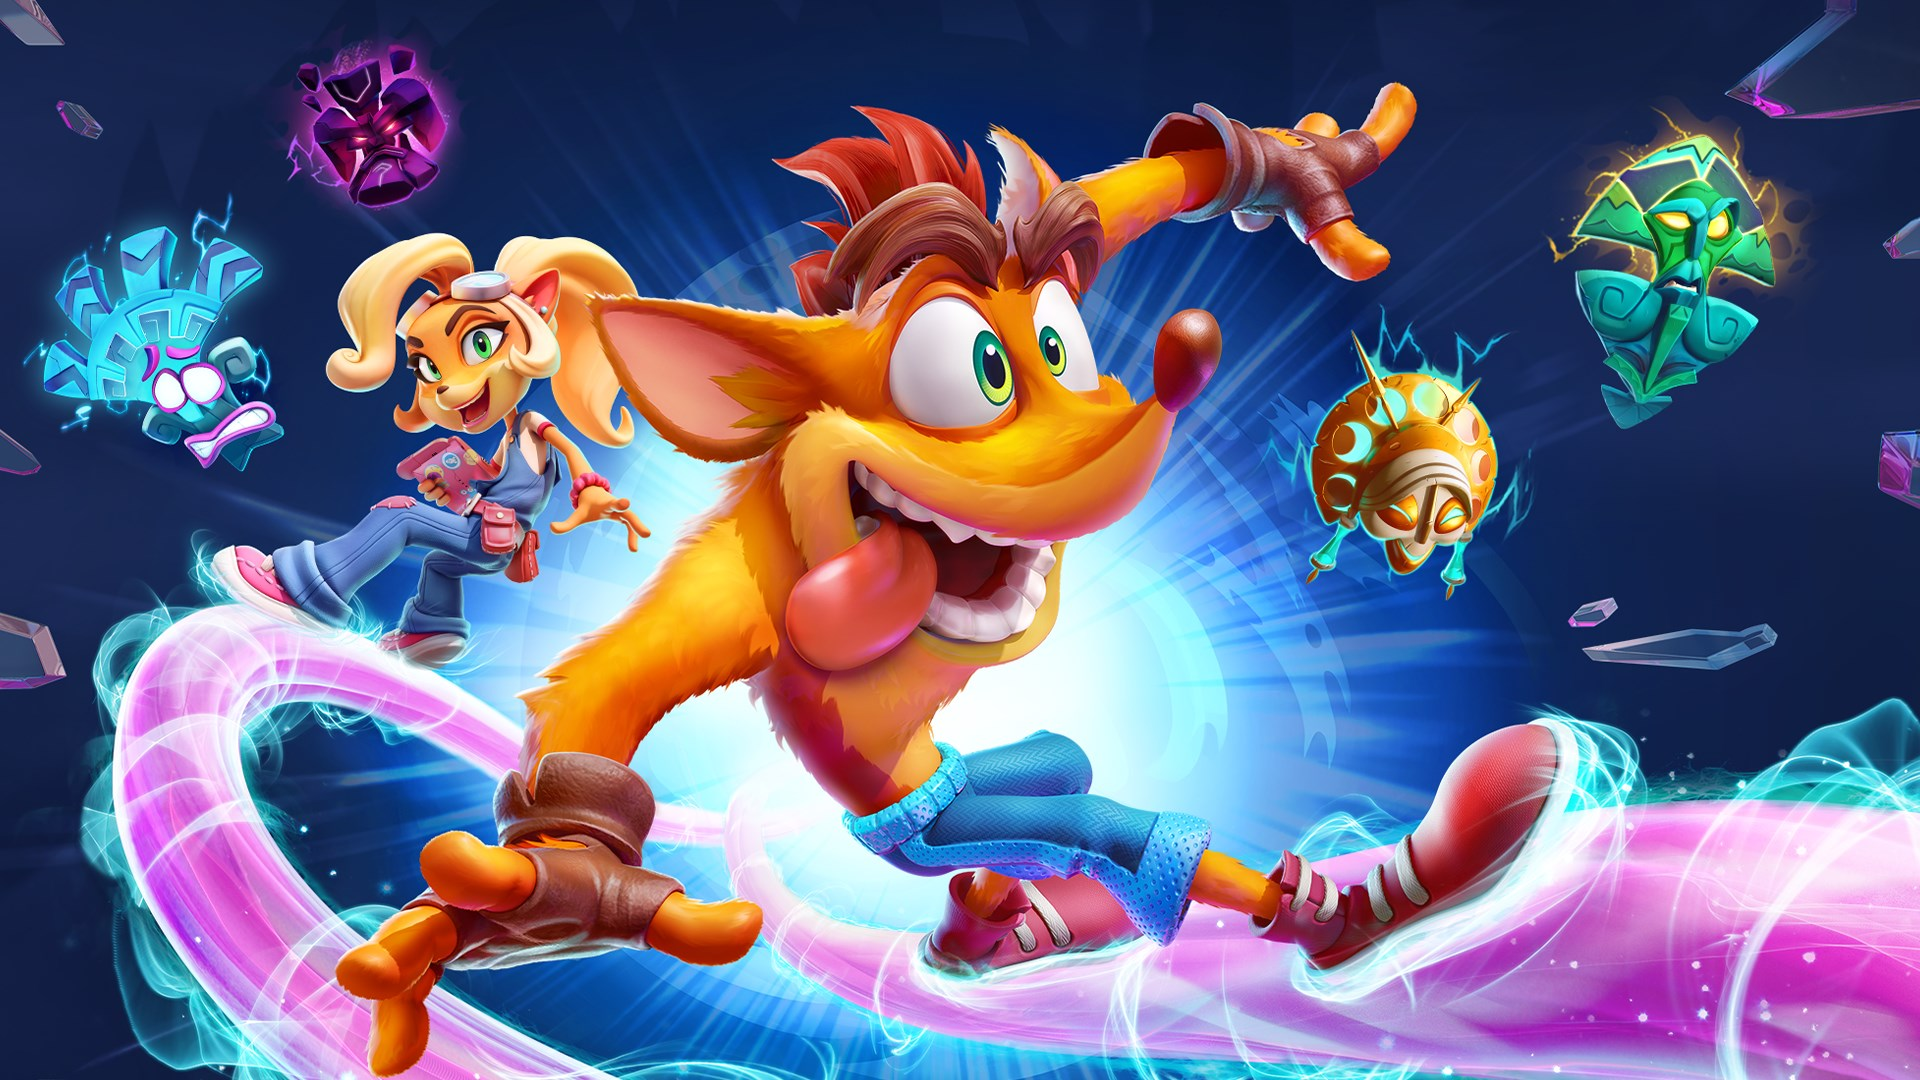 Buy Crash Bandicoot™ 4: It's About Time - Microsoft Store